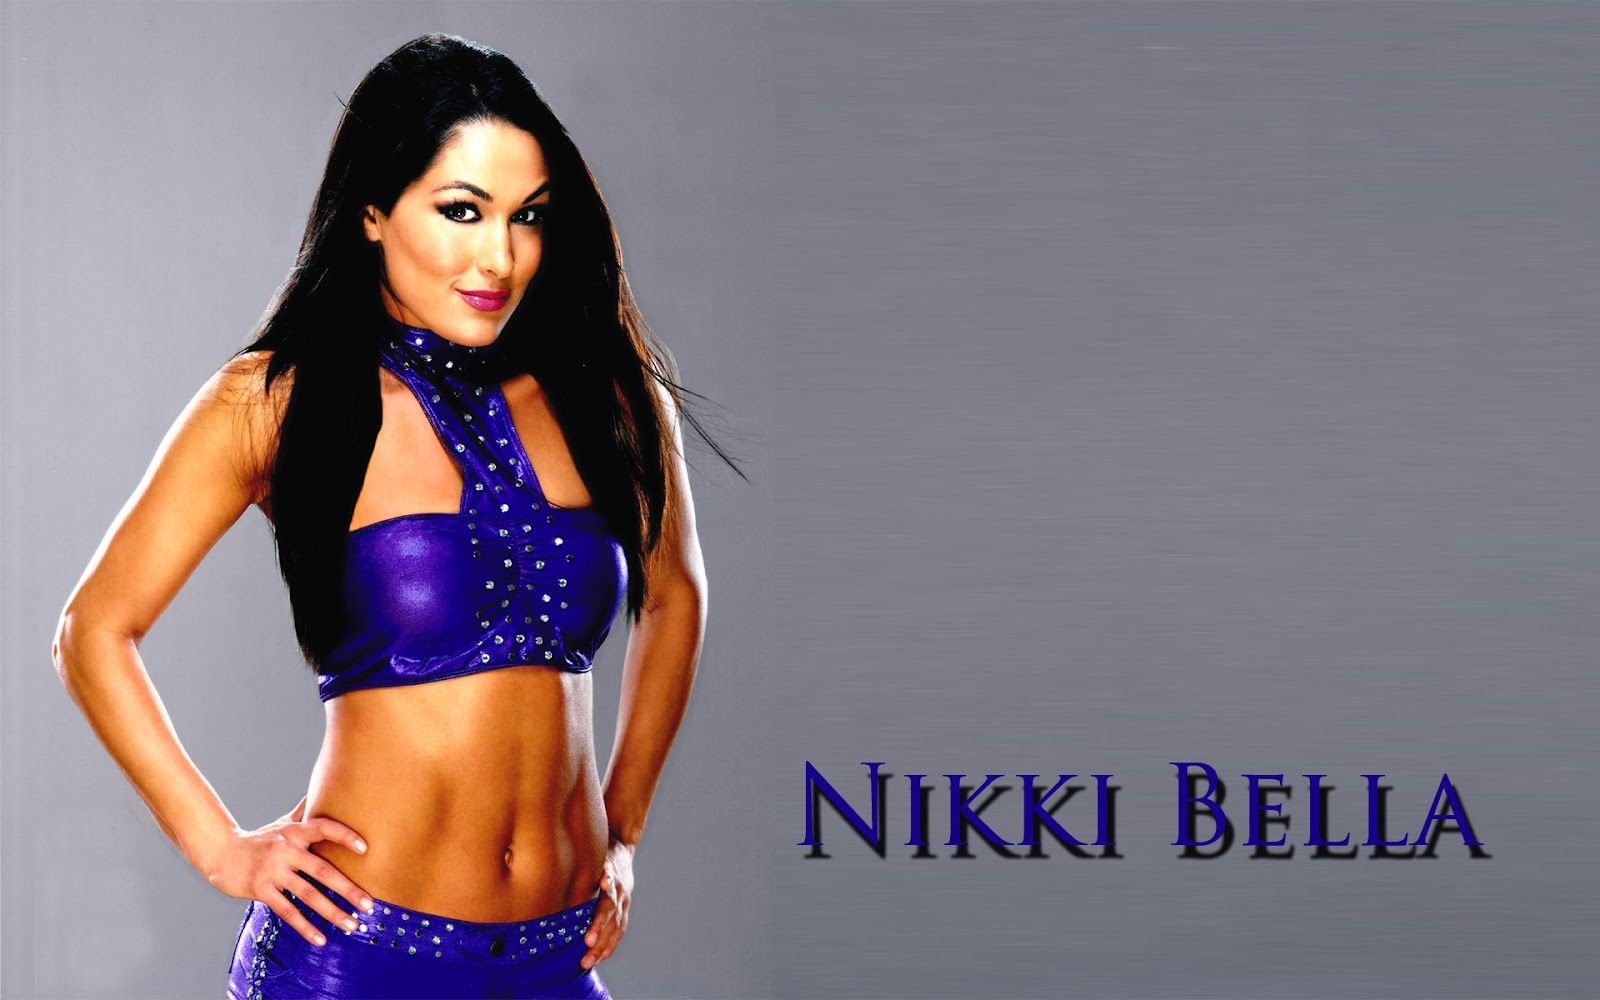 Wwe Super Star Nikki Bella Hd Wallpaper And Pictures -3168